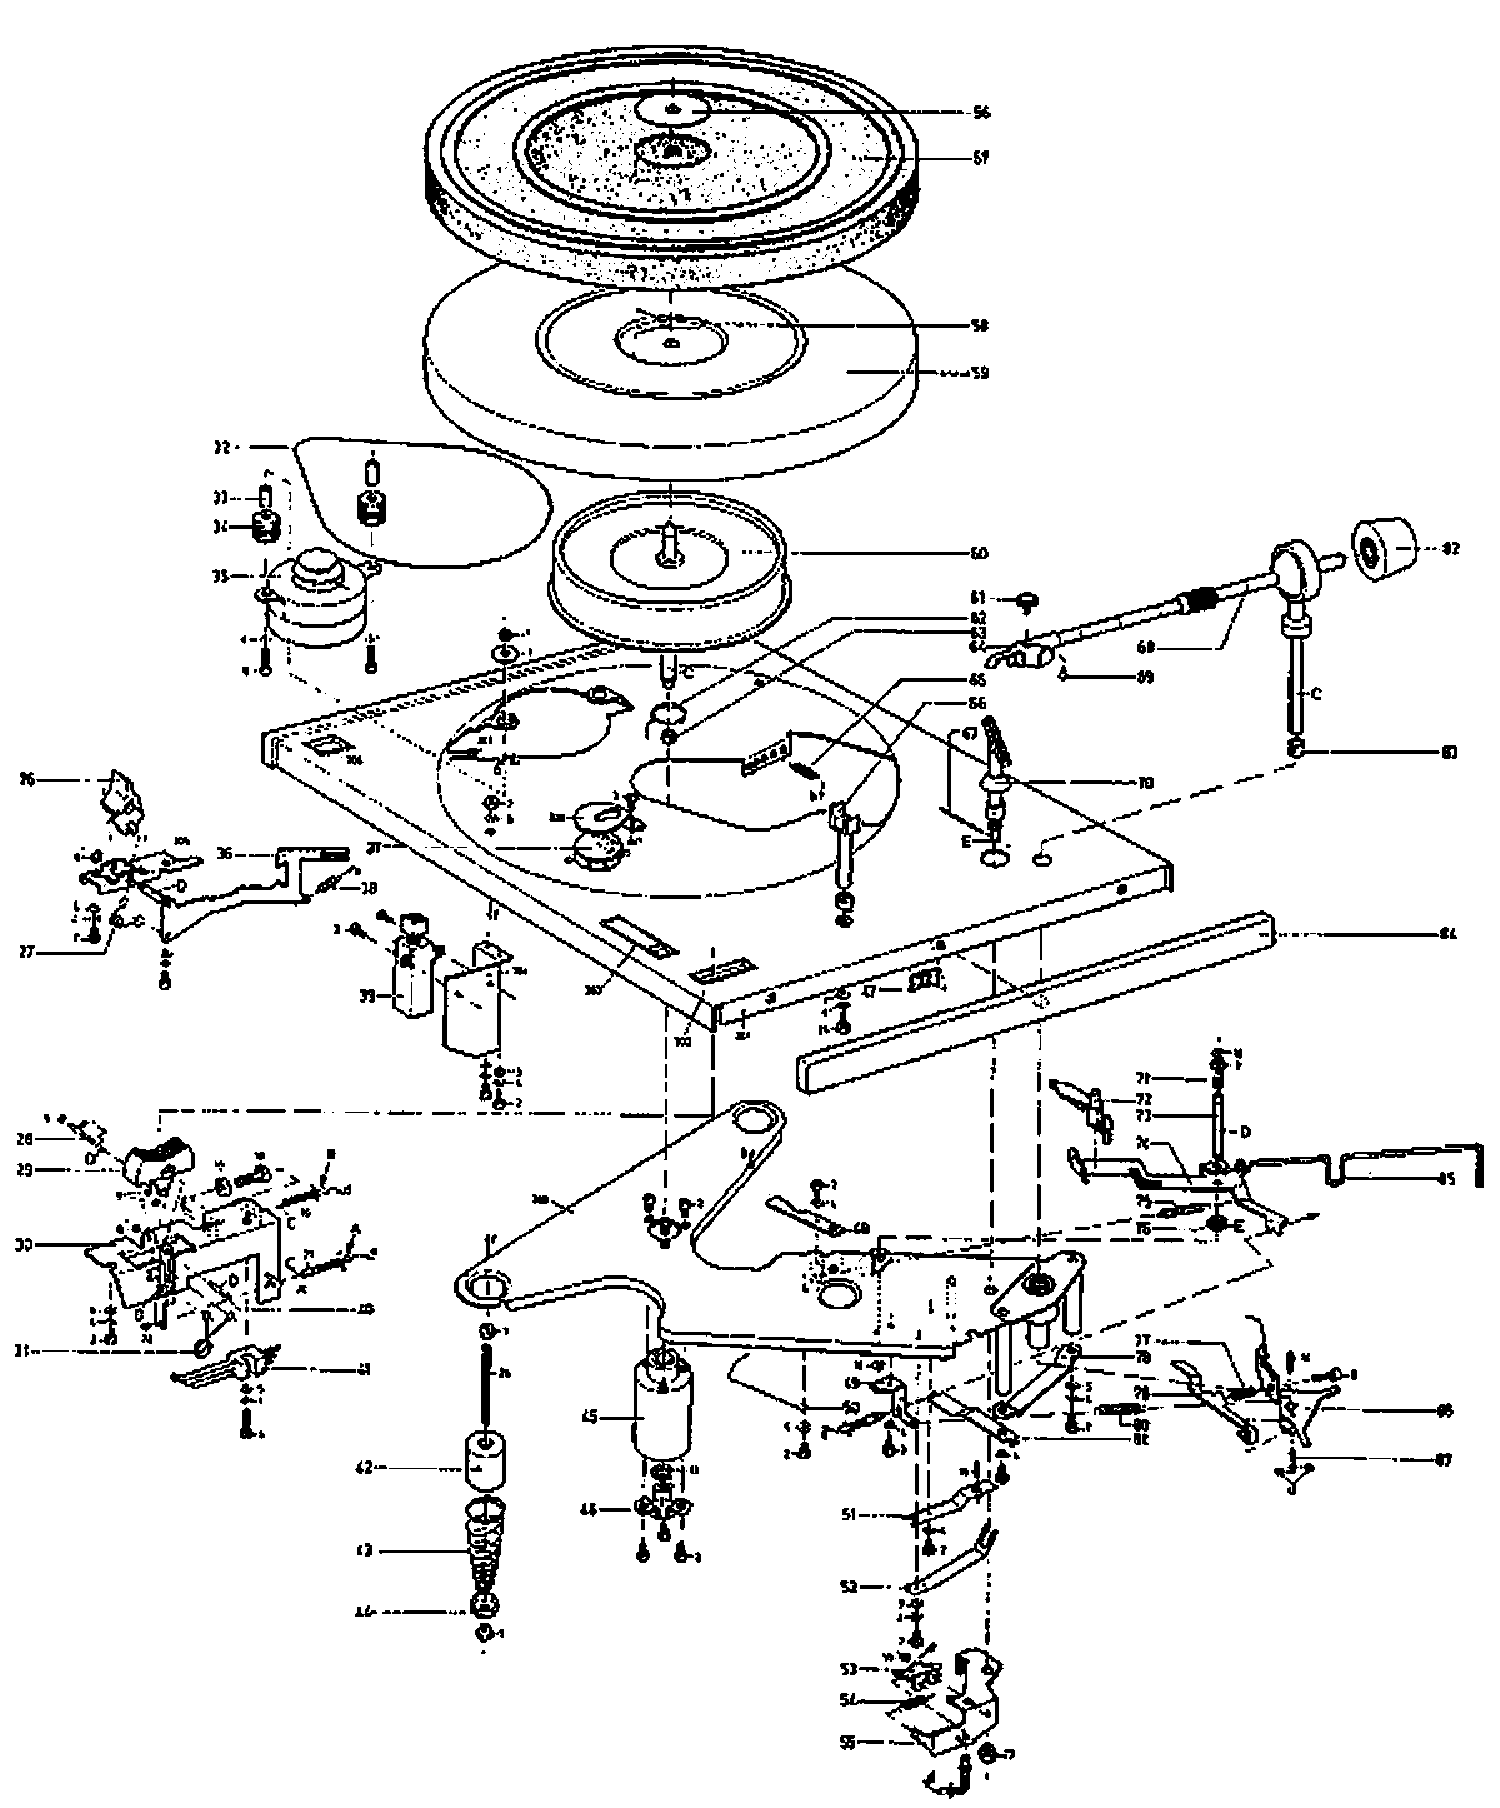 1995 Saab 9000 Wiring Diagram Saab 9-3 Engine Diagram